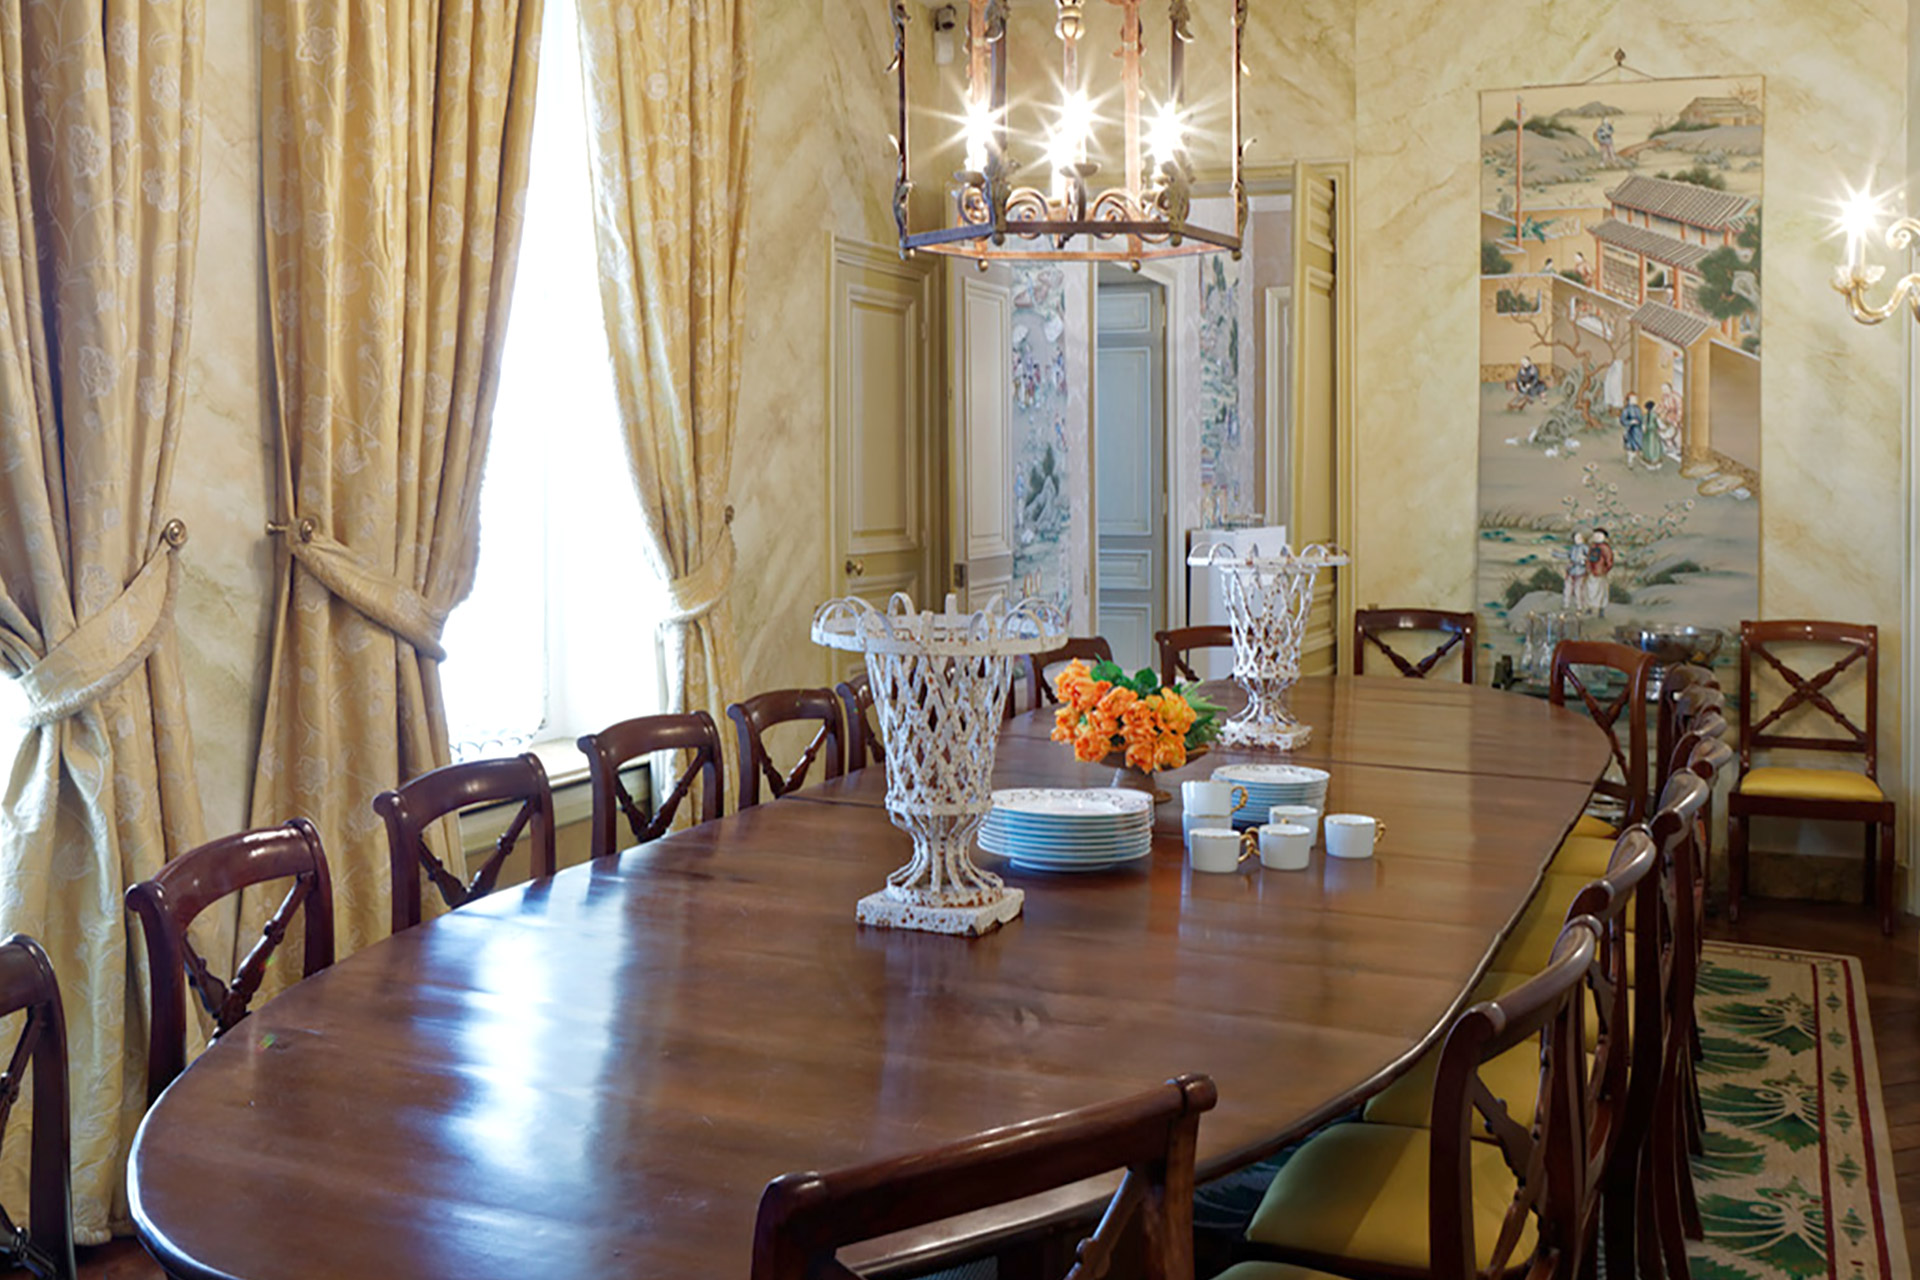 Impress guests with dinners around this kingly dining table in the Bailly Paris vacation rental